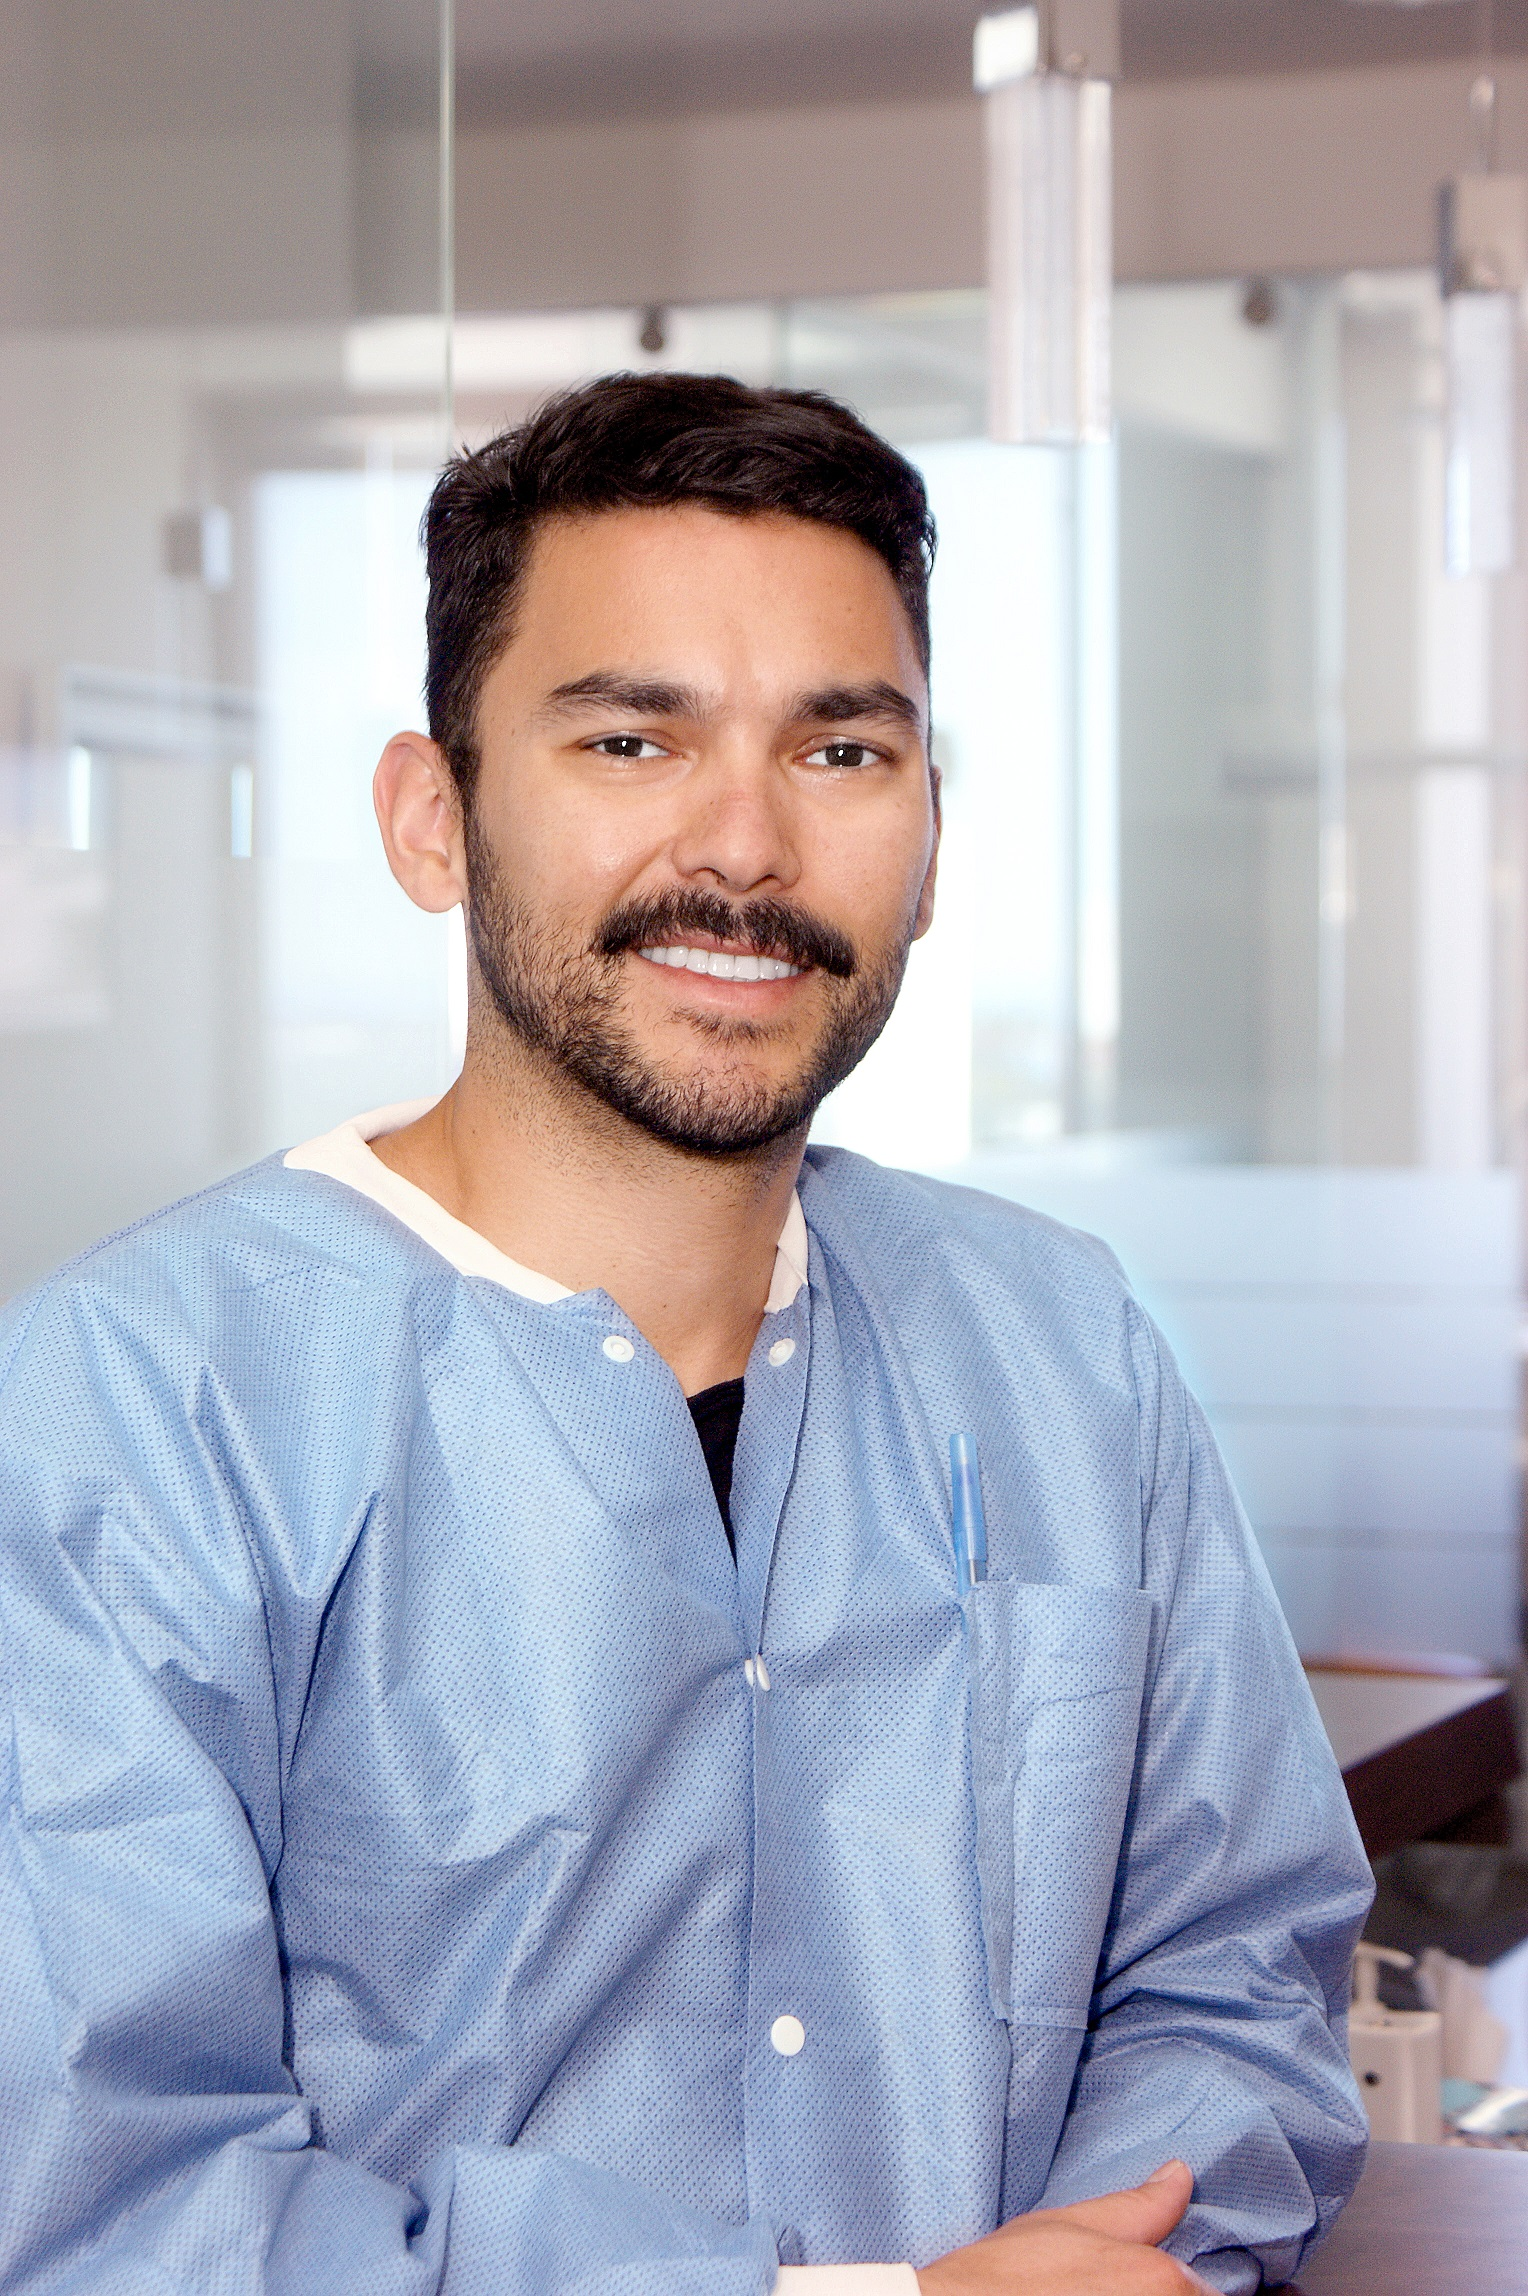 PABLO LORVAN - Dental Assistant